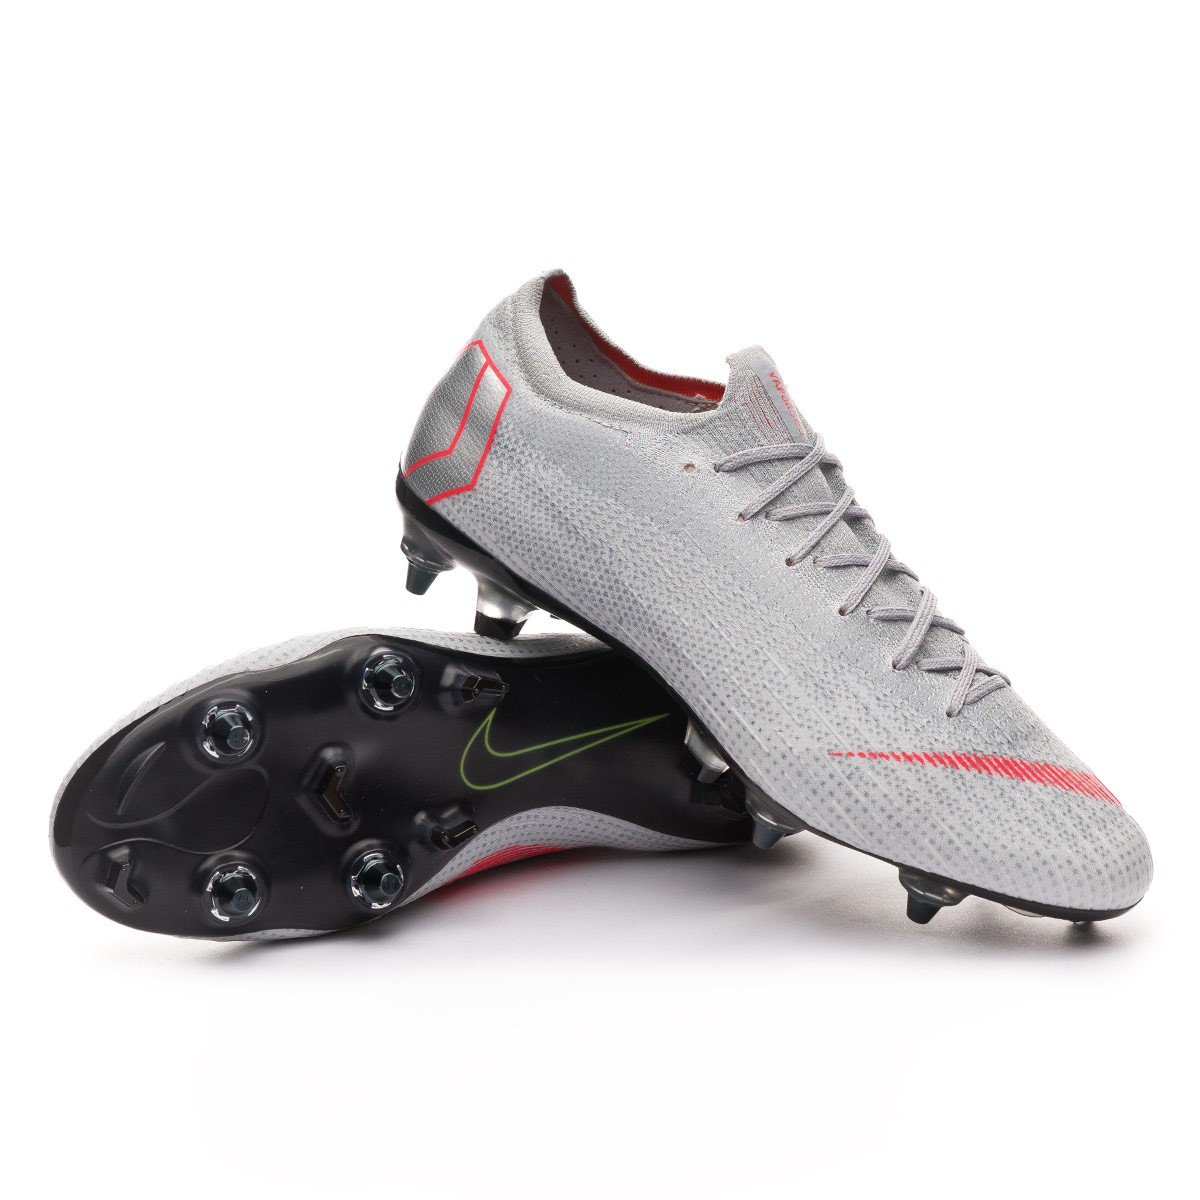 205d6d148 Nike Mercurial Vapor XII Elite SG-Pro ACC Football Boots. Wolf grey-Light  ...